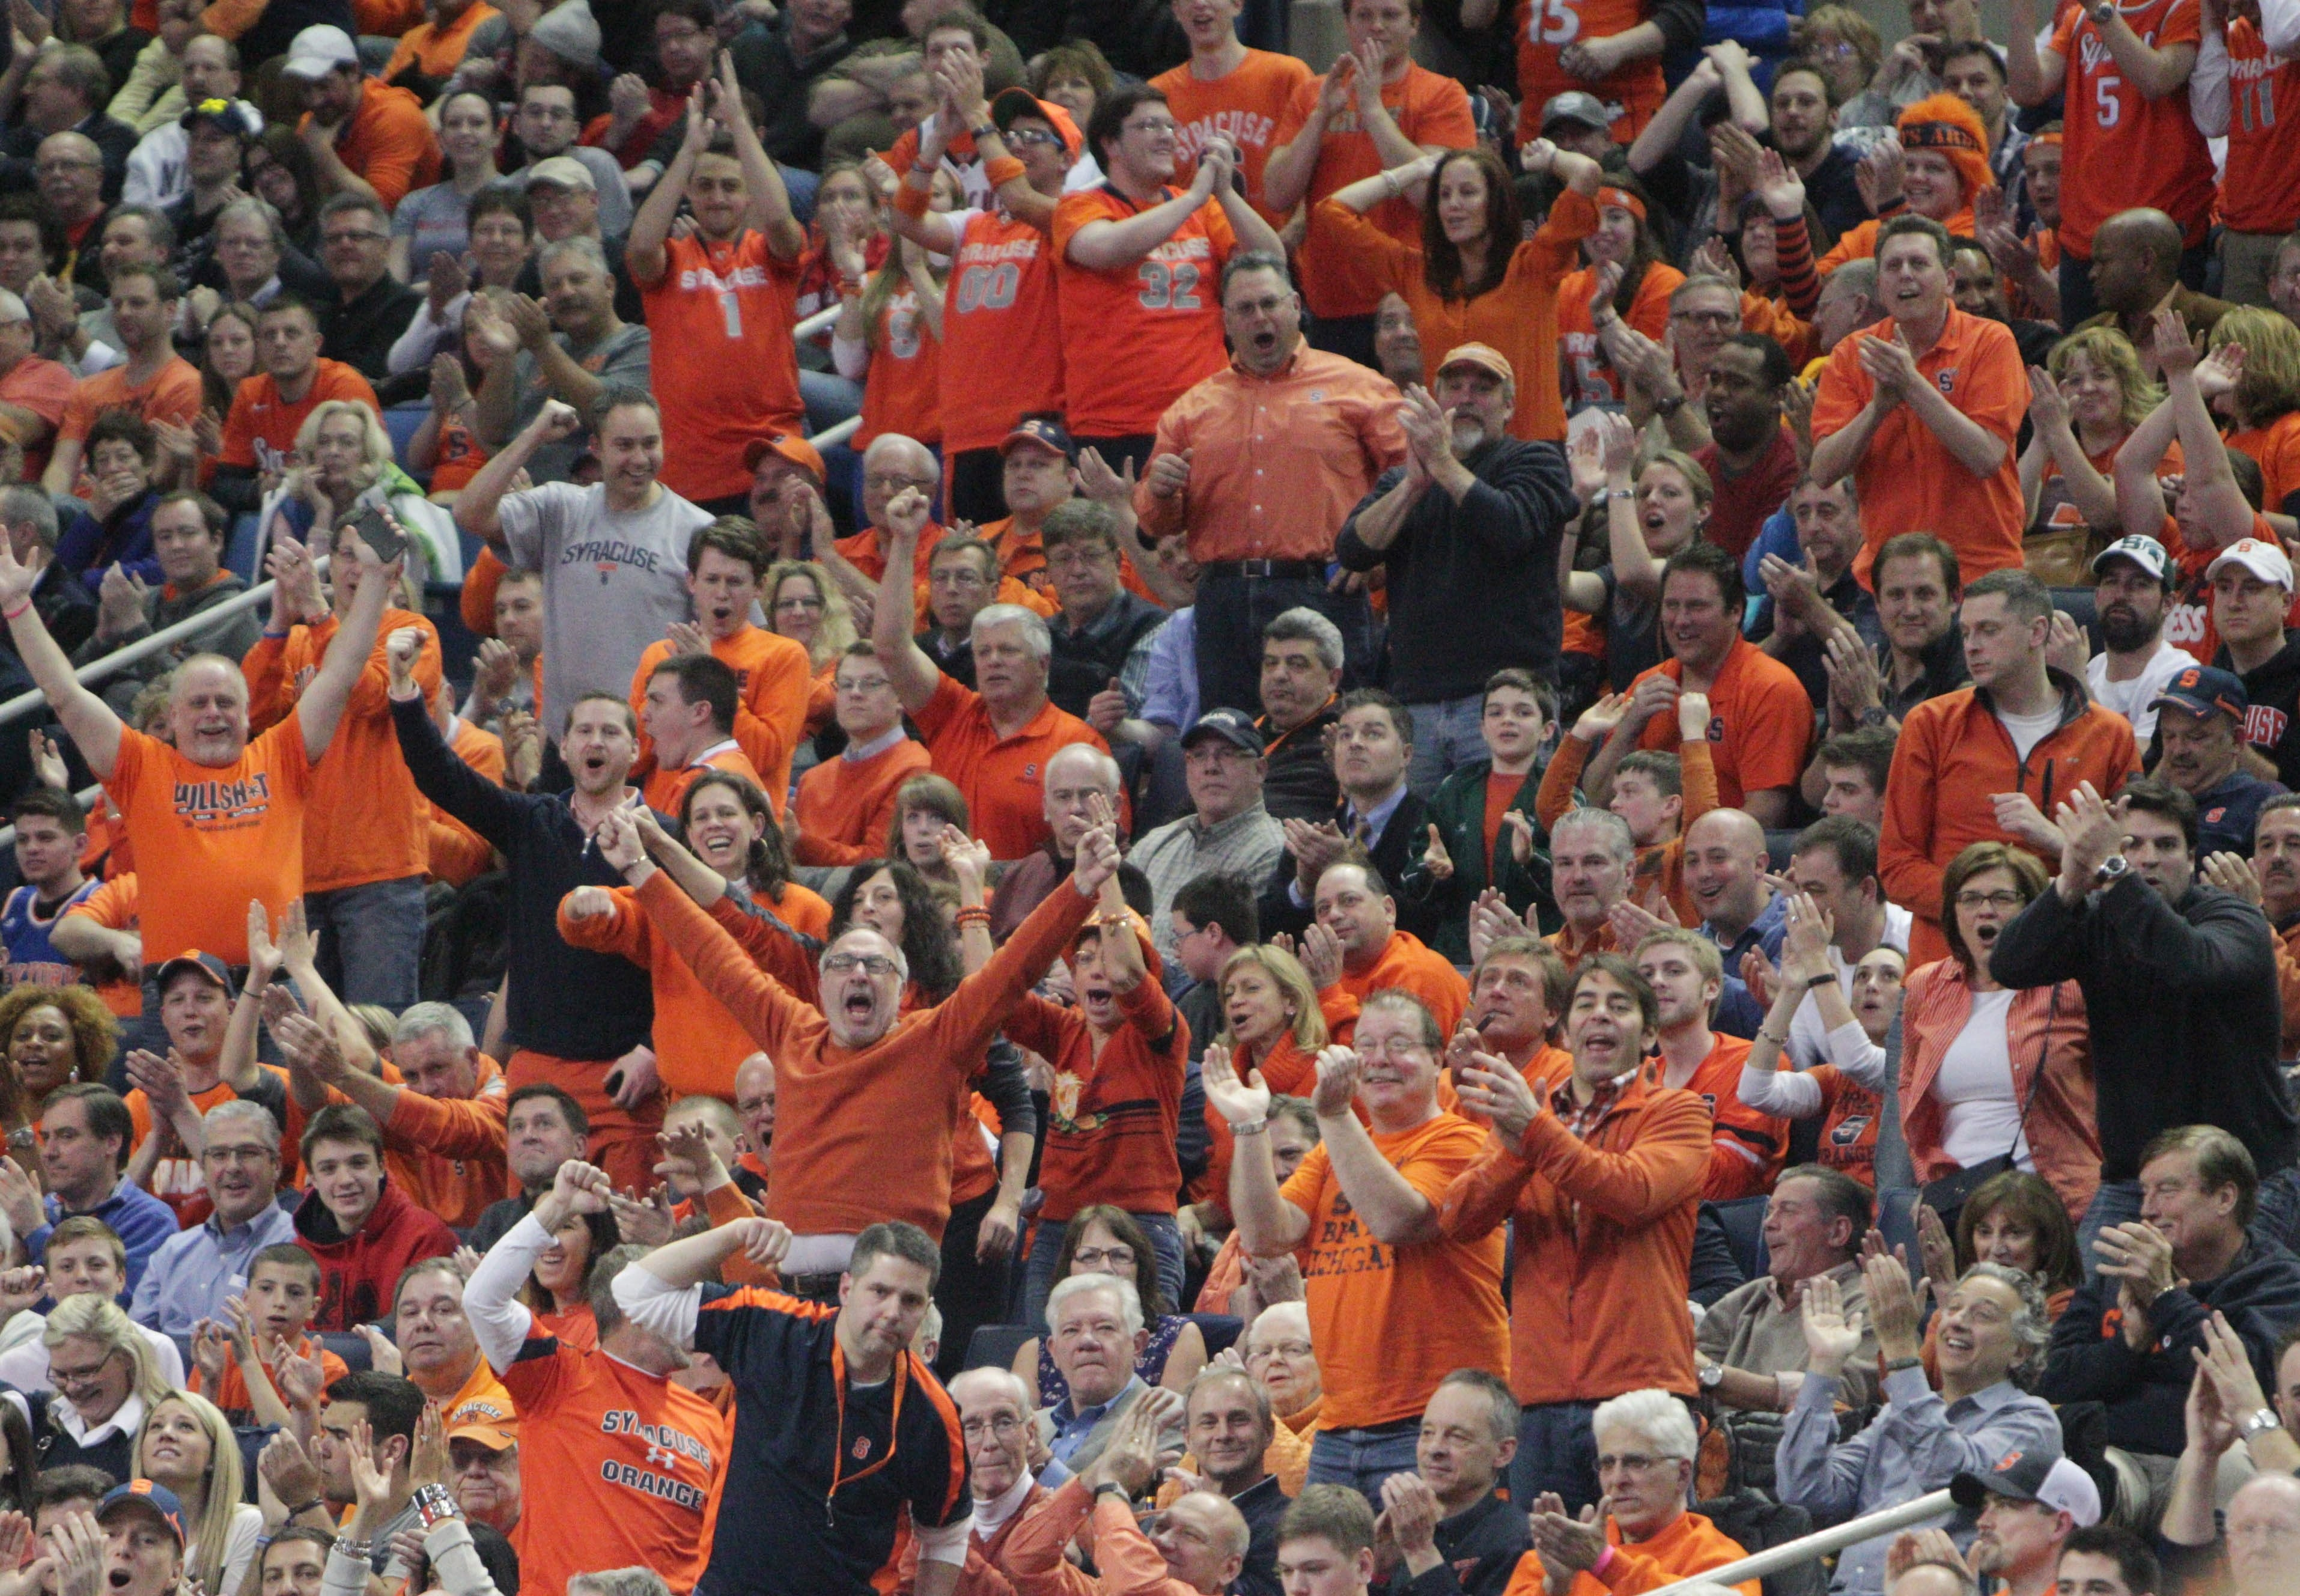 Syracuse fans cheer on their team in the game at First Niagara Center on Thursday.